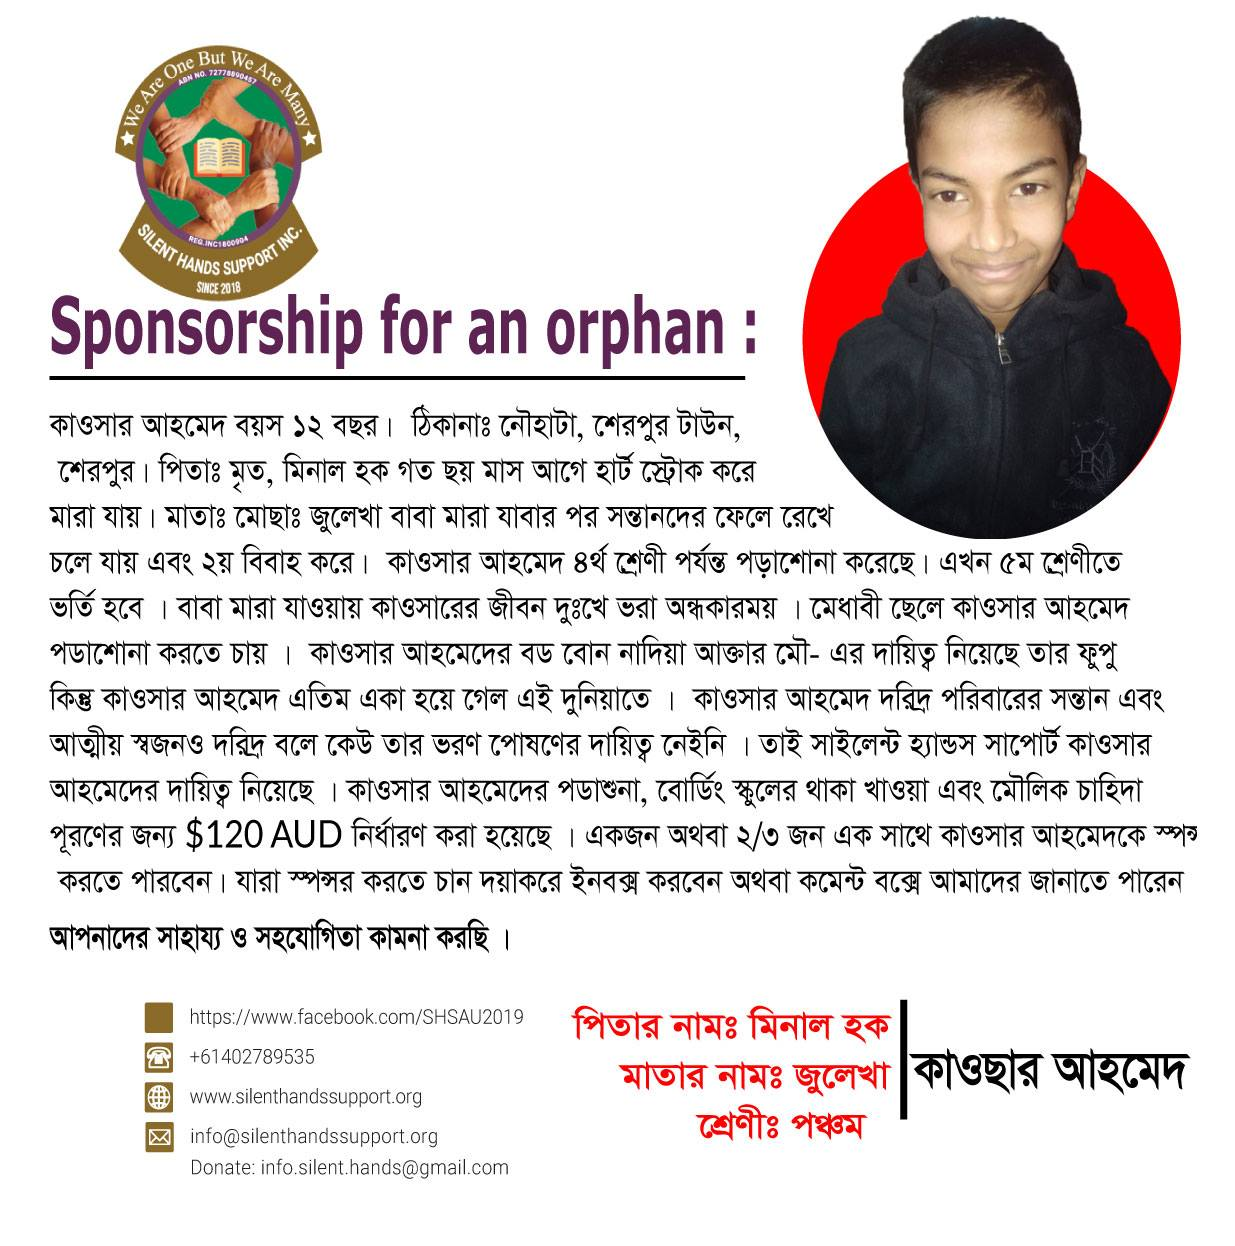 Sponsorship for an orphan